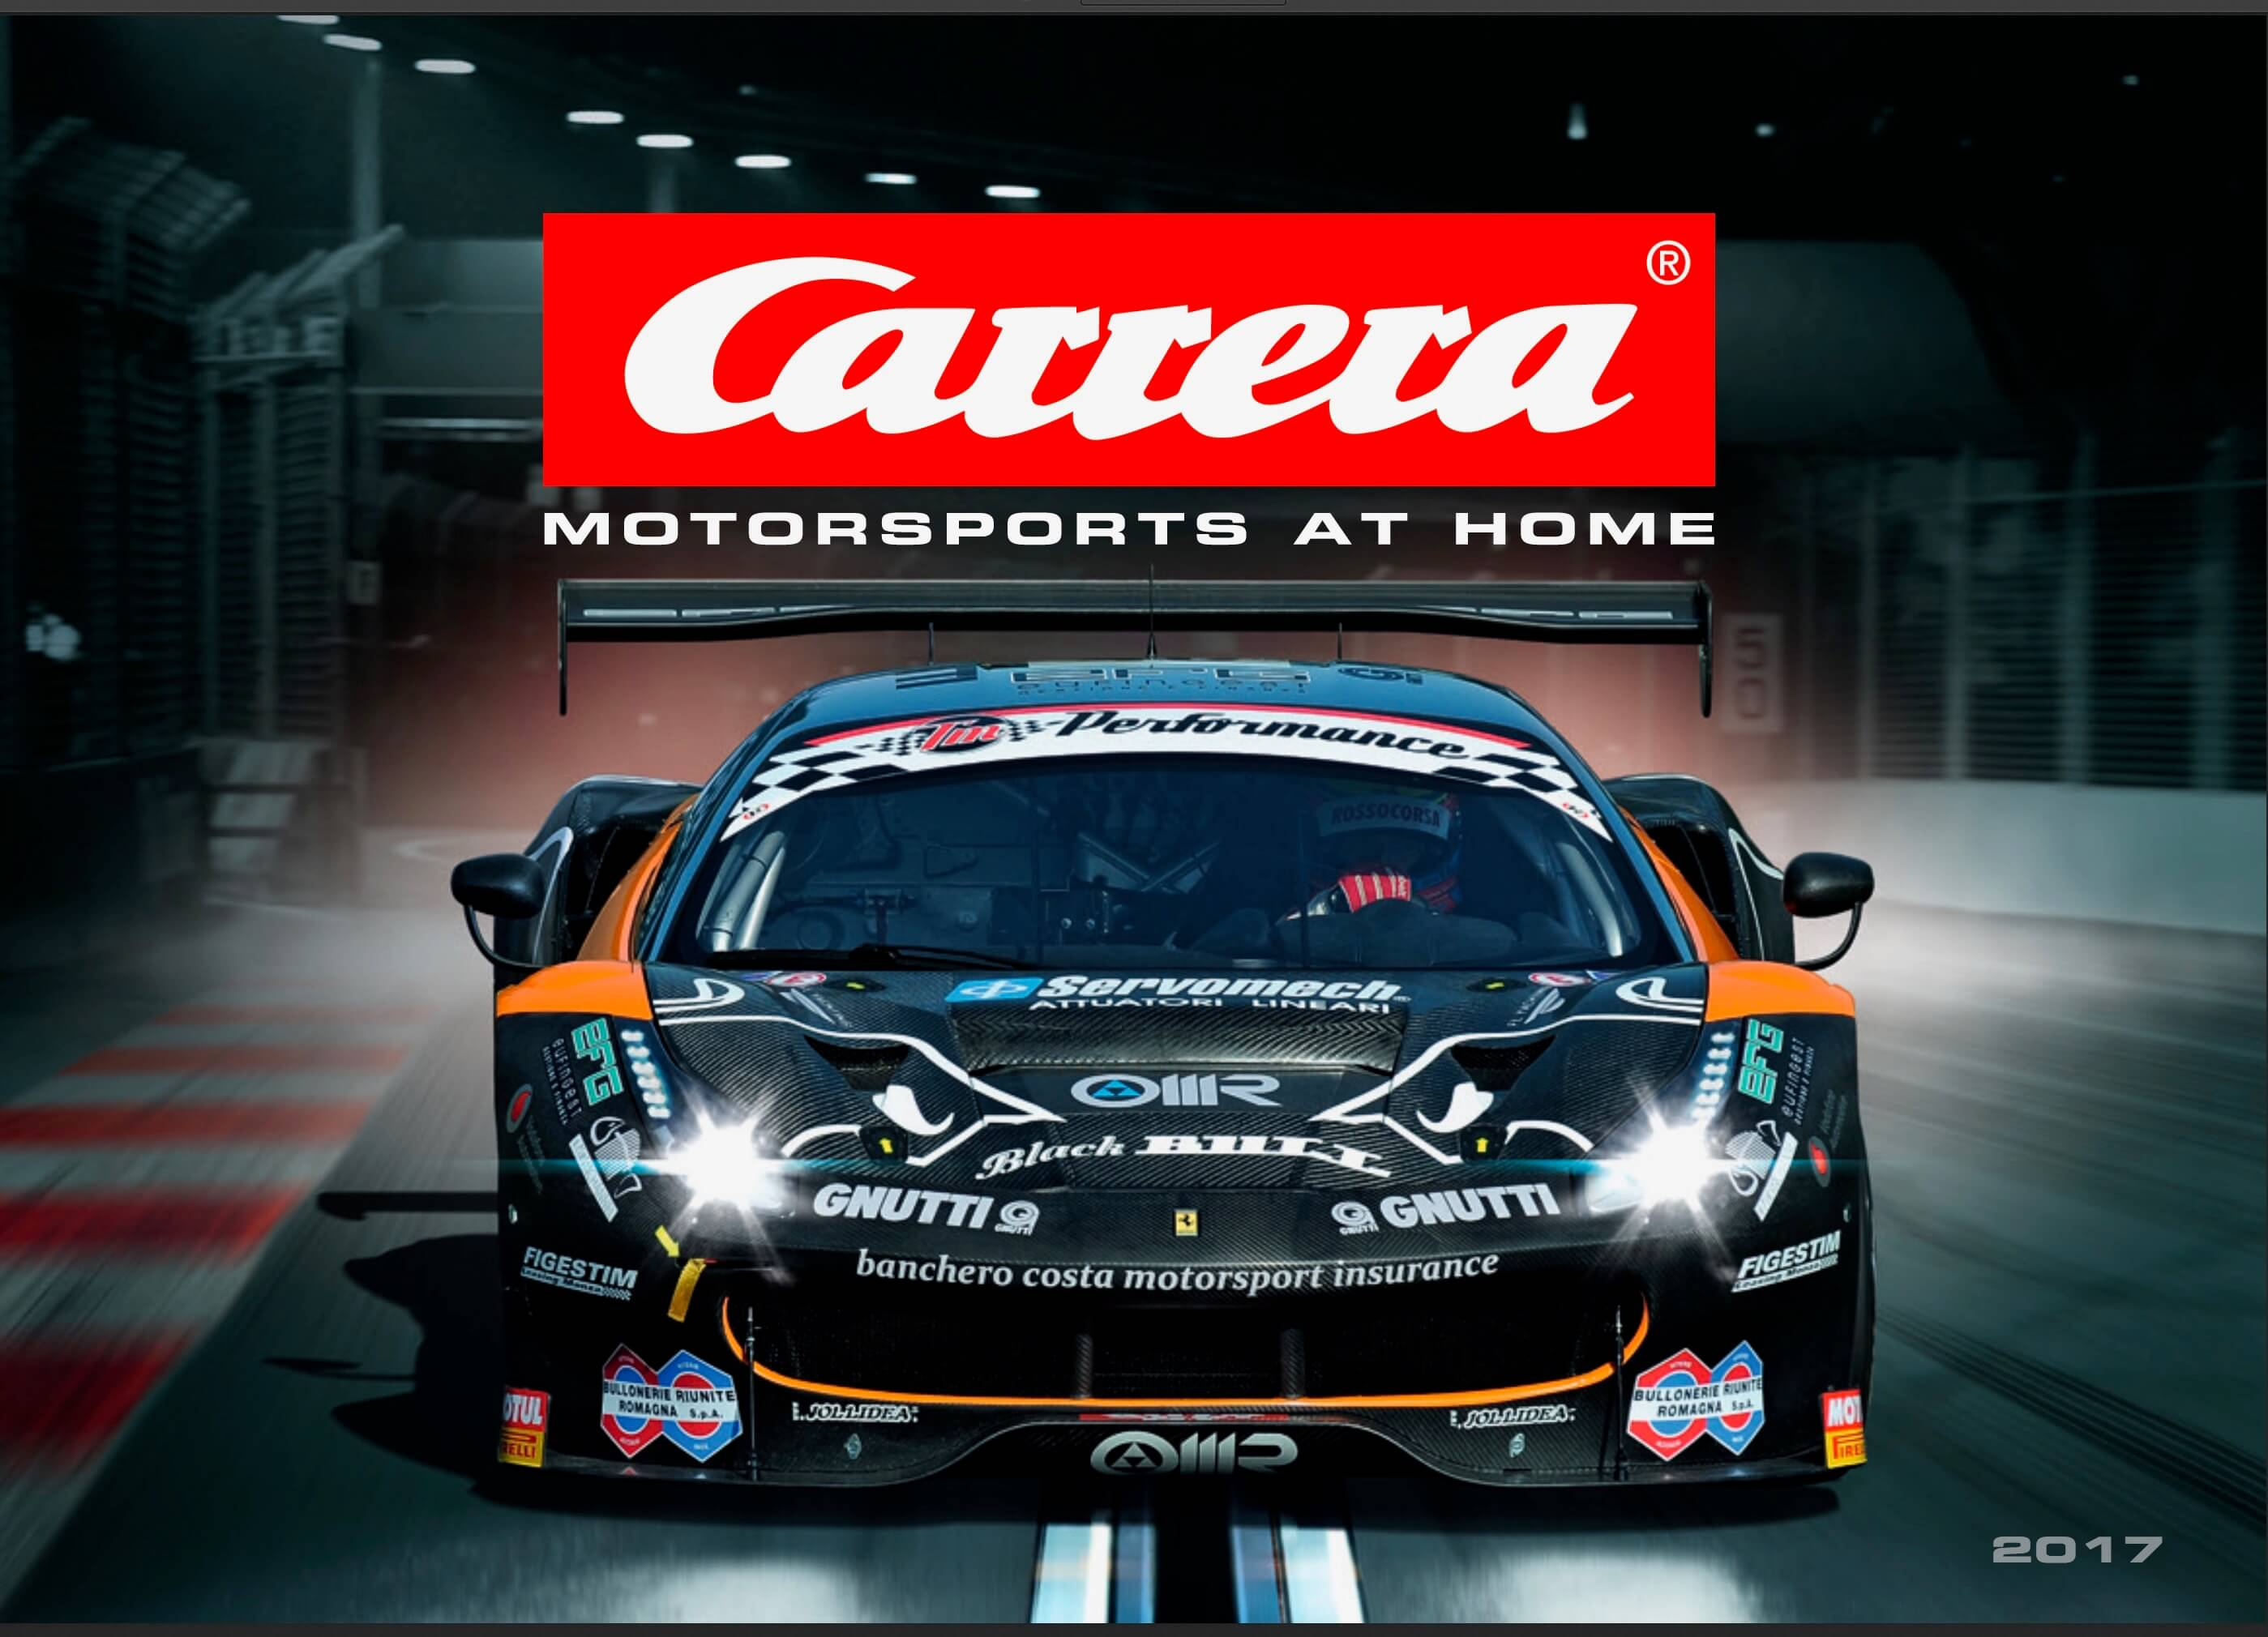 71251 Carrera 2017 Product Catalog